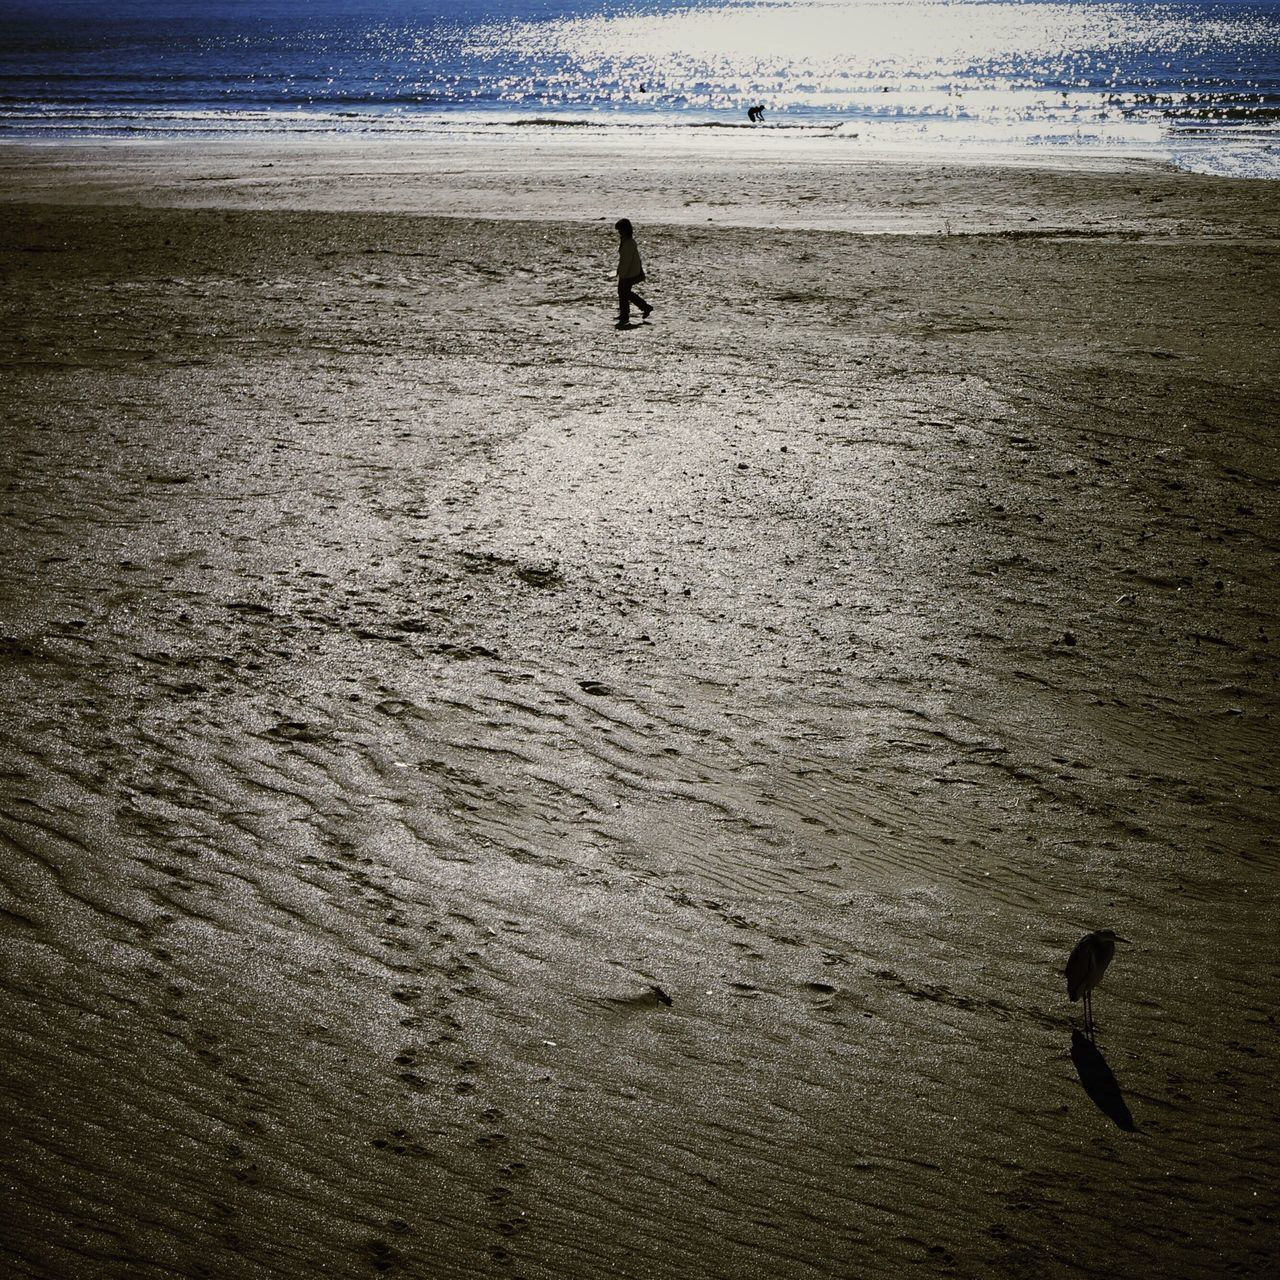 High Angle View Of Person And Bird On Sand